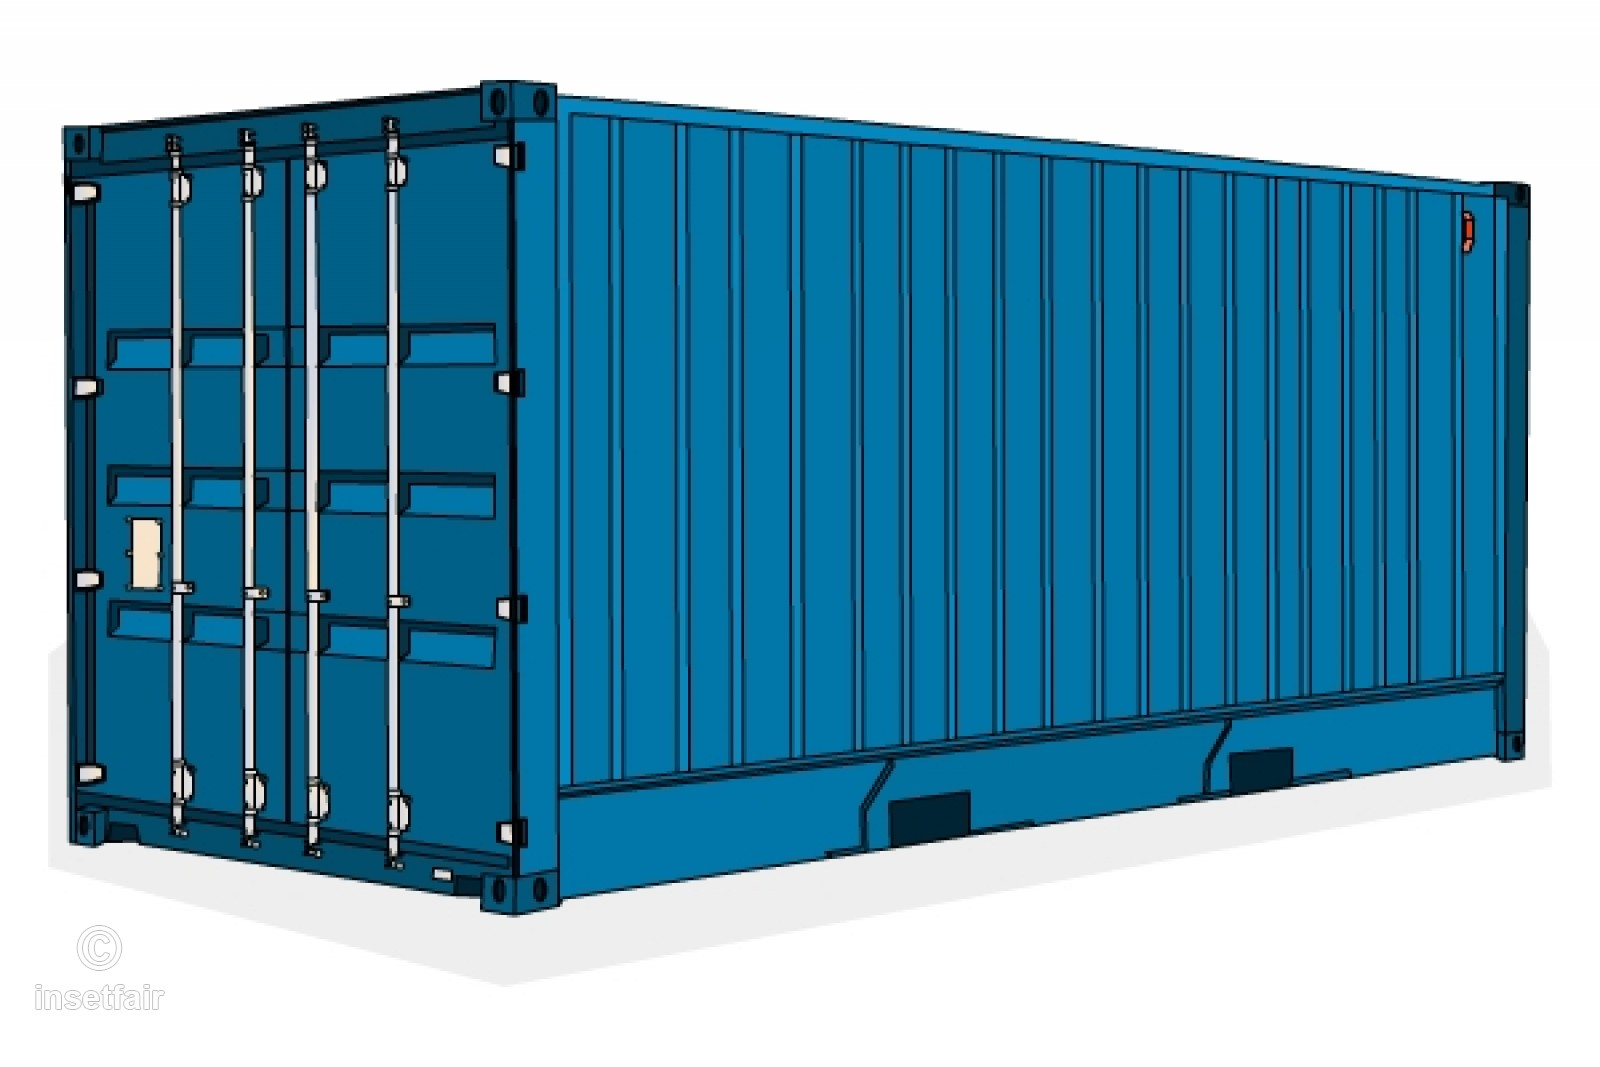 1600x1067 Goods Shipping Container Vector Royalty Free Image